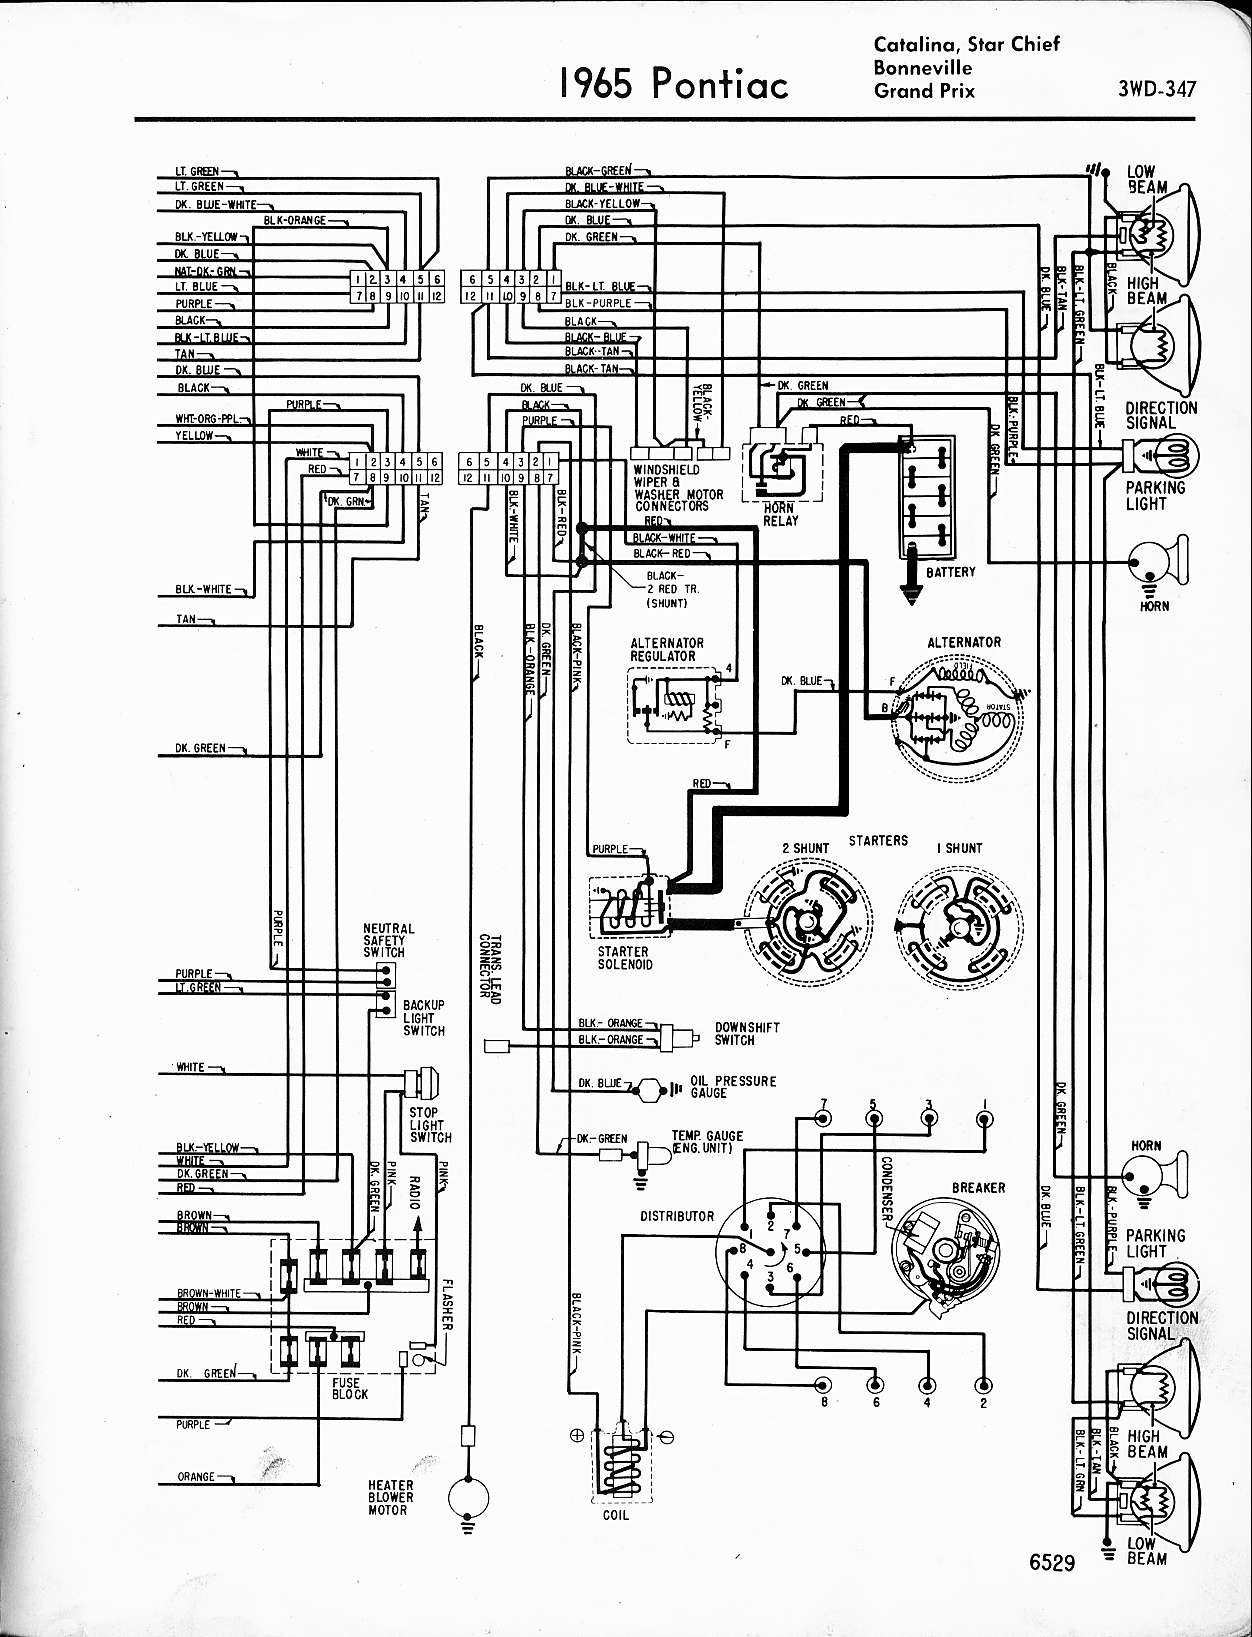 MWire5765 347 2006 pontiac grand prix ac wiring diagram wiring diagram simonand 2004 pontiac gto wiring diagram at bayanpartner.co